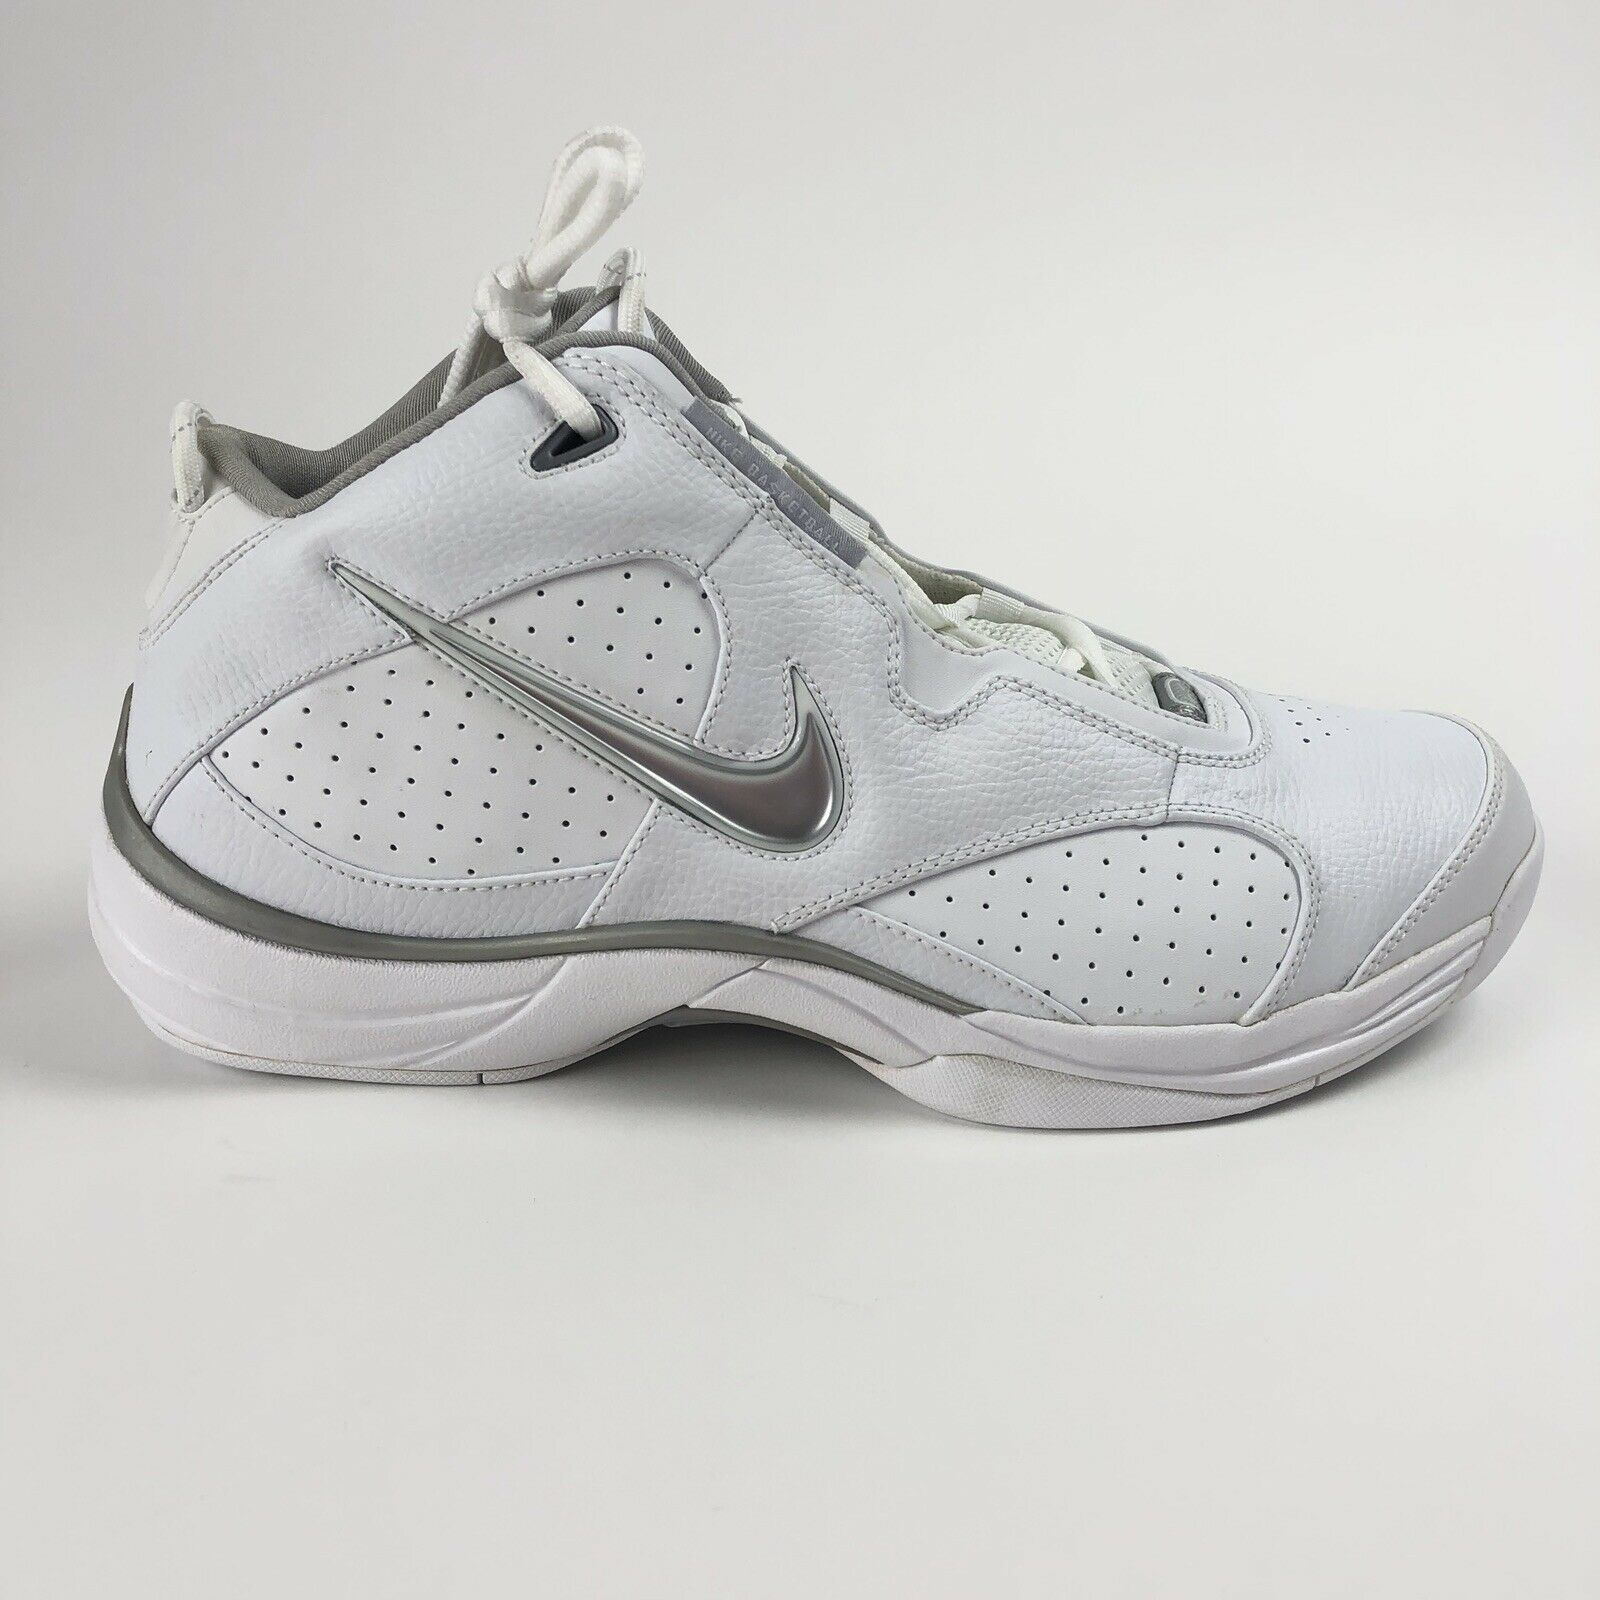 Nike Flight Fury Mens Size 13 Mid Top White Basketball shoes Sneakers 310102-101